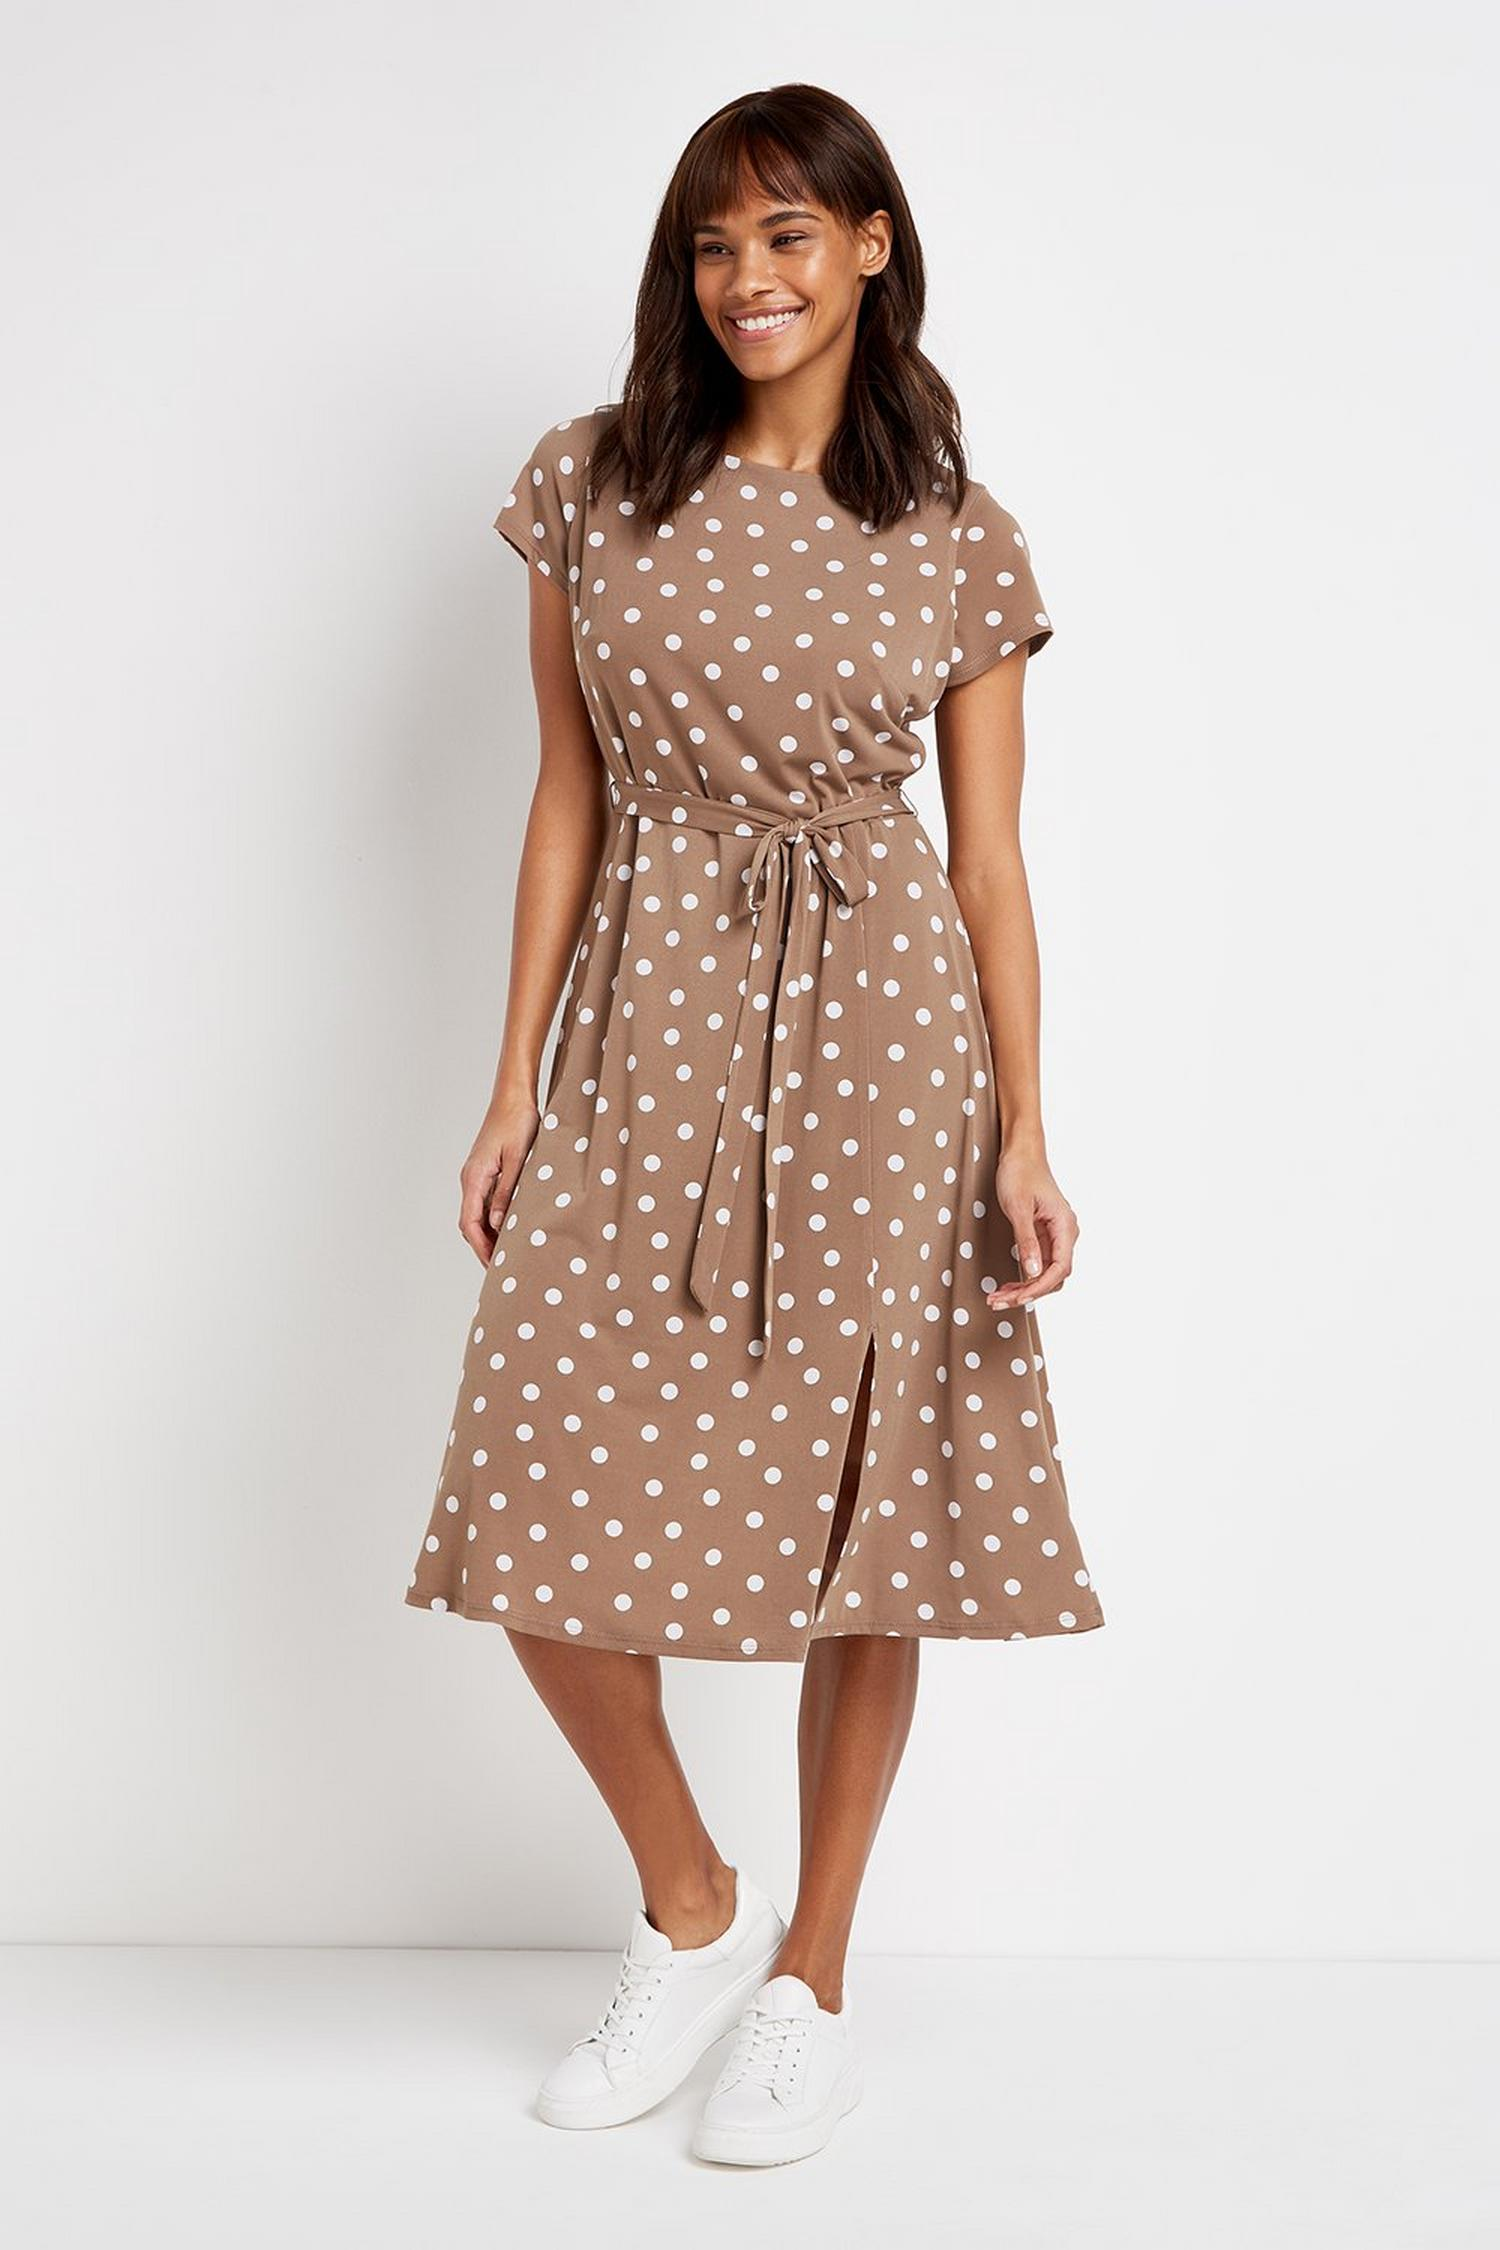 103 Taupe Polka Dot Dress image number 1